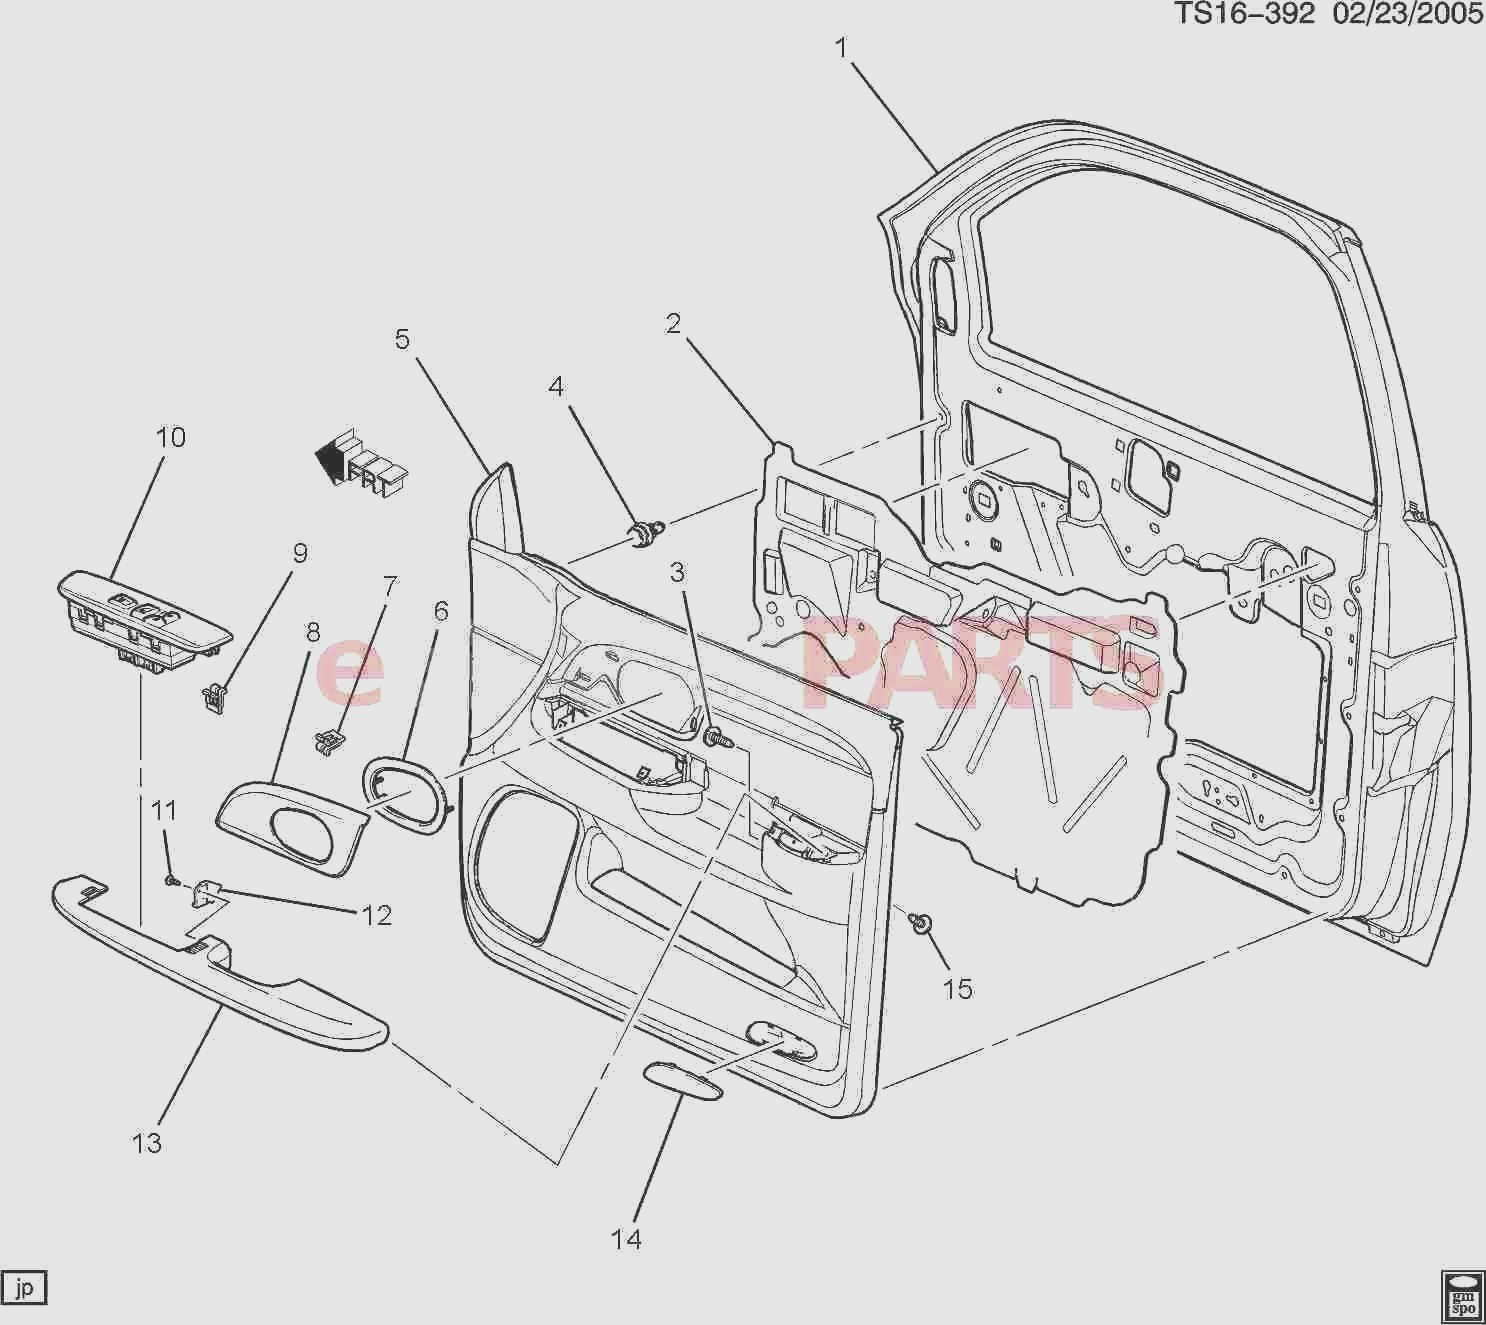 Car Parts Diagram Interior Cadillac Parts Inspirational Detailed Diagram Car Parts Basic Of Car Parts Diagram Interior Mercedes Benz Parts Diagram – Car Parts Diagram New Interior Car